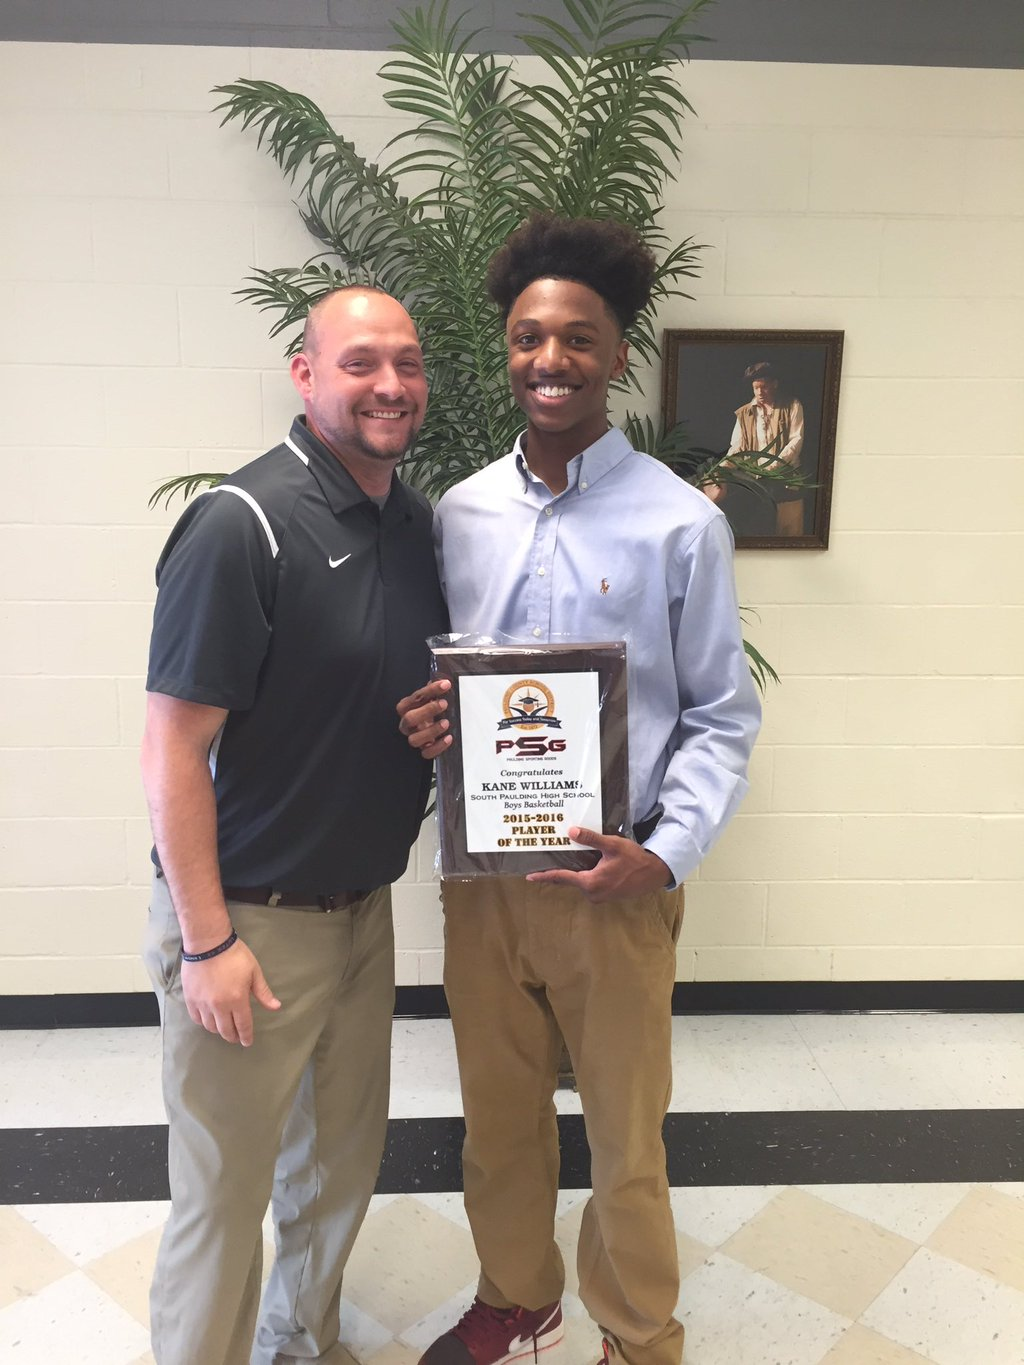 Kane Williams honored as County Player of the Year